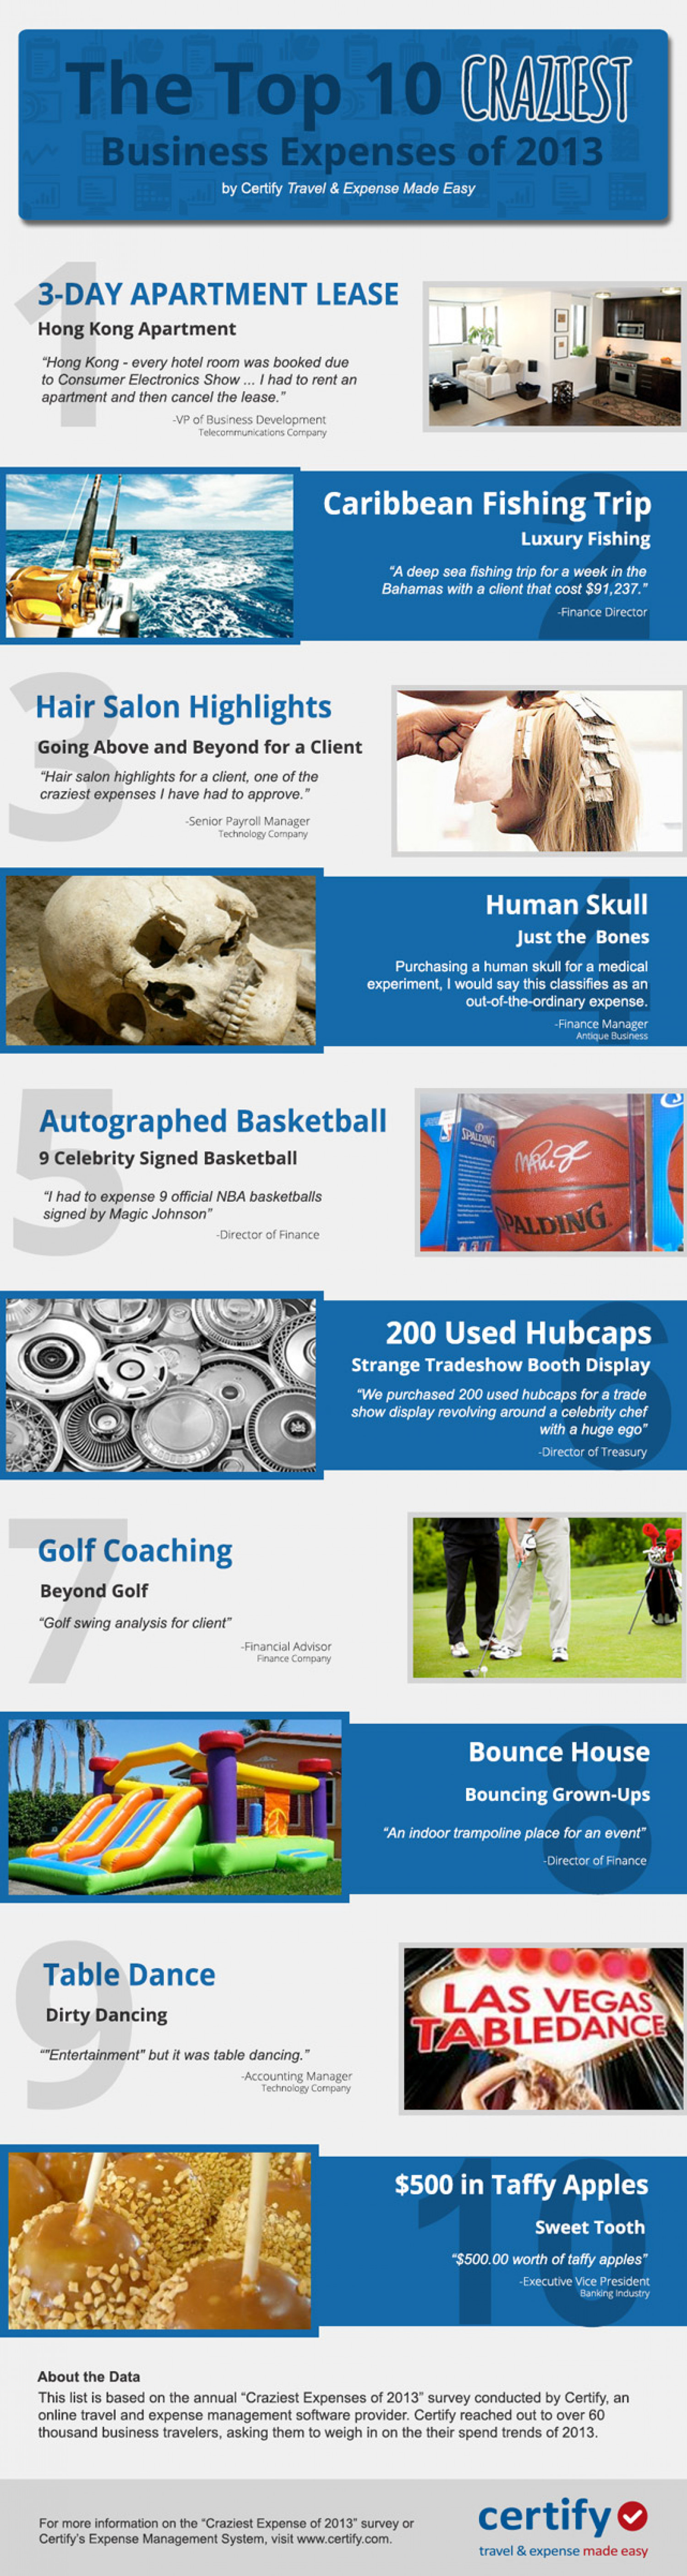 The Top 10 Craziest Business Expenses of 2013 Infographic